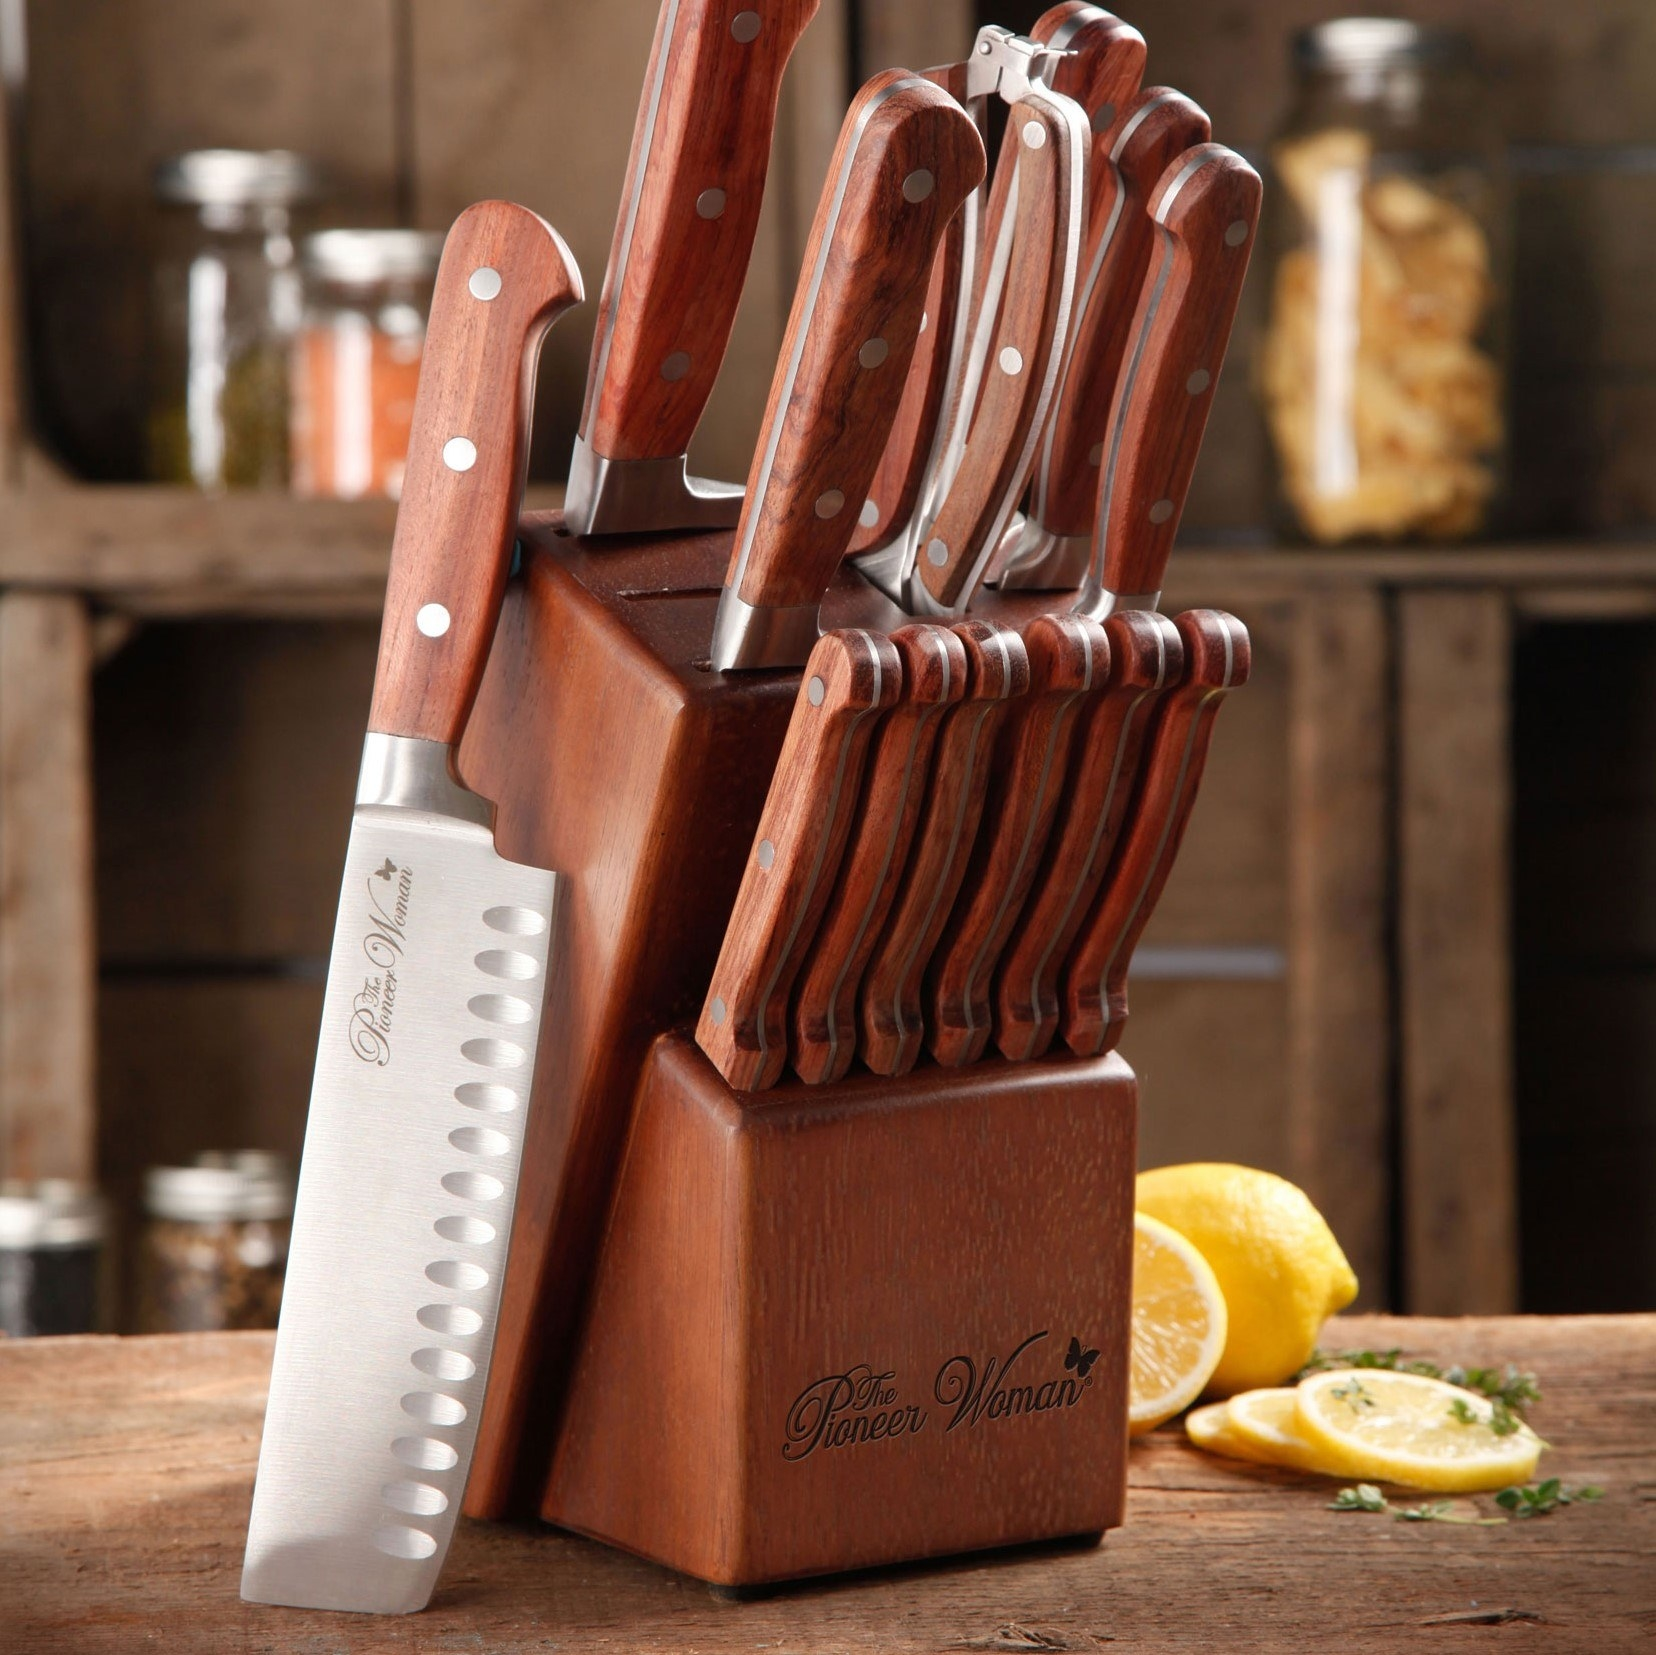 The knife set in the color red rosewood